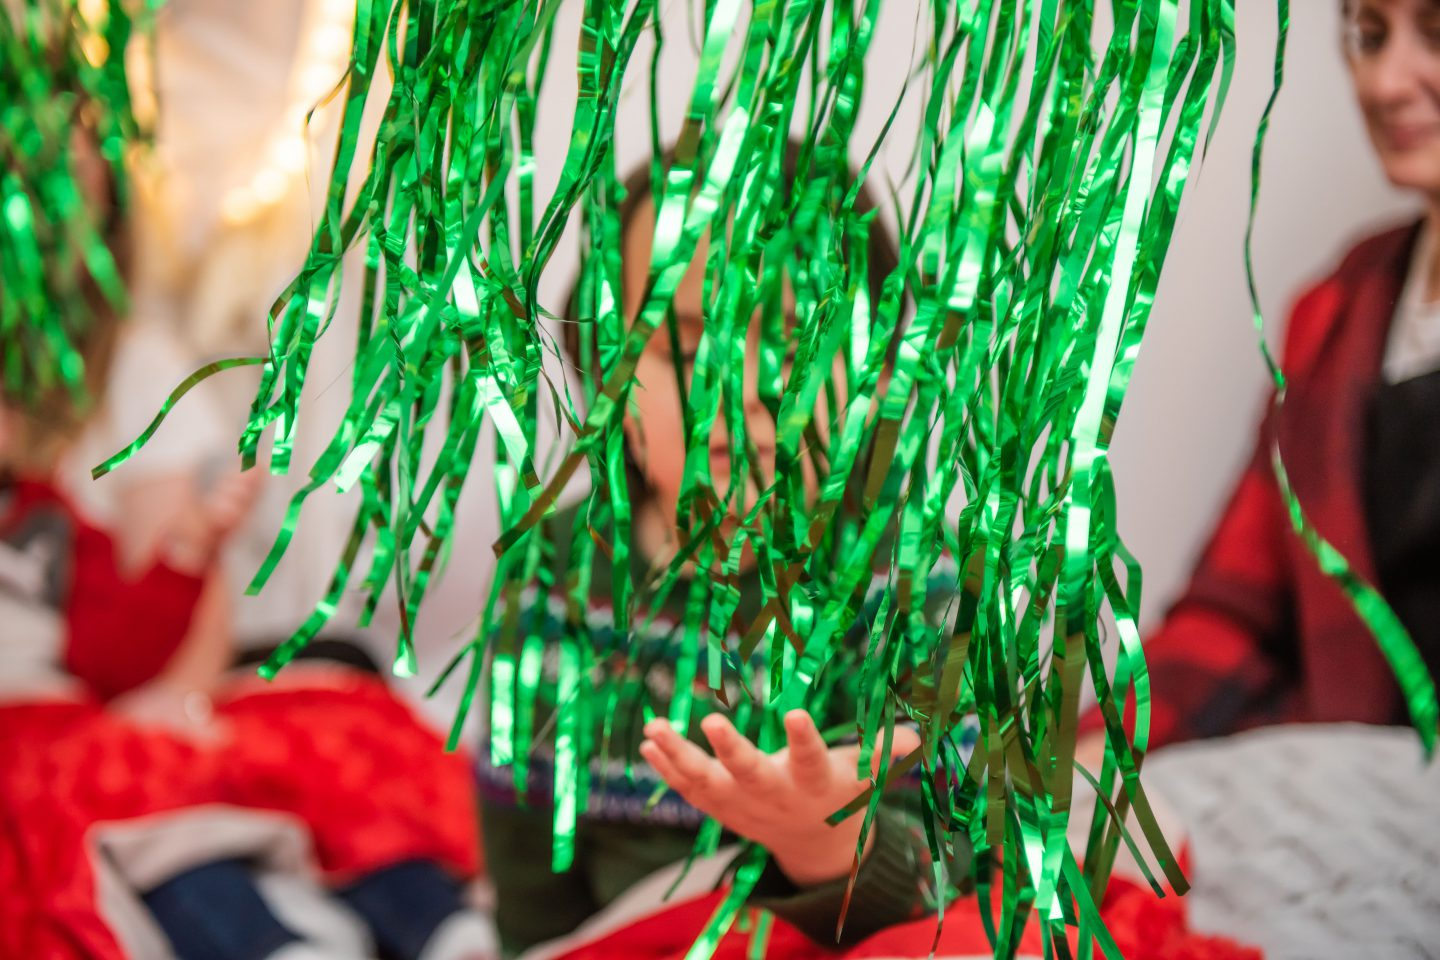 Little Tiny Xmas - a young boy holds out his hand to feel green tinsel tendrils that hang in the foreground of the picture